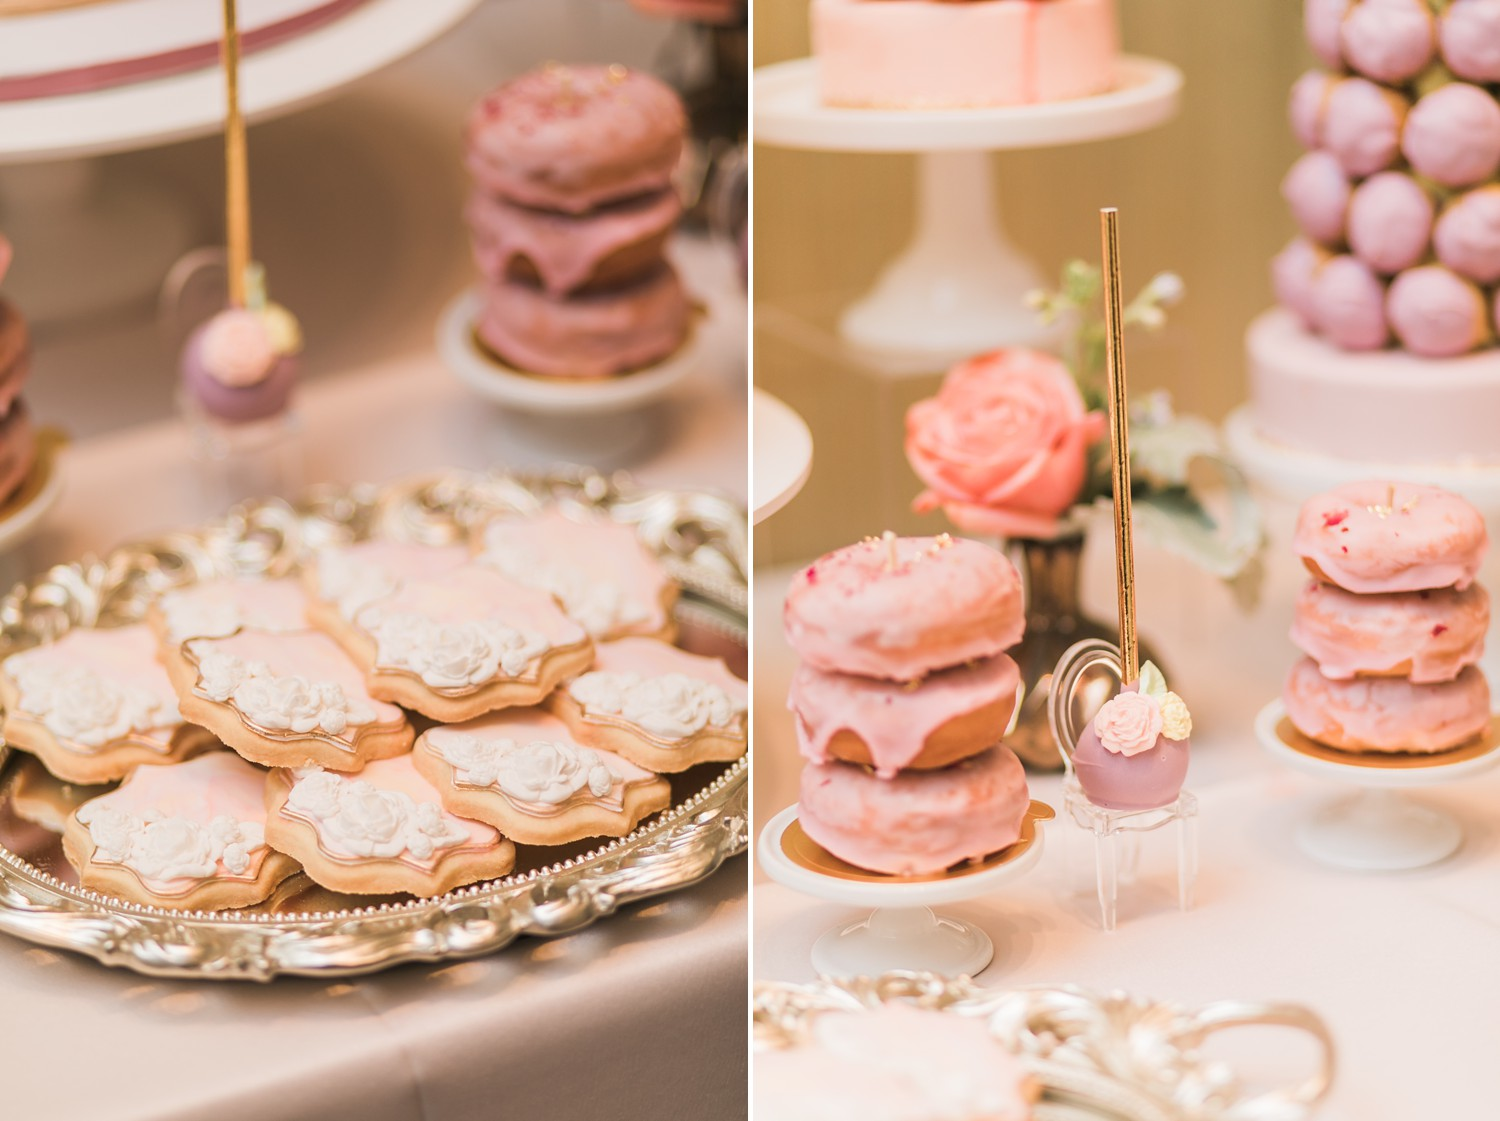 Pink Dessert Table Vinci Room Luxury Yorkville Toronto Four Season Hotel Wedding Photos with Chinese Bride and Groom